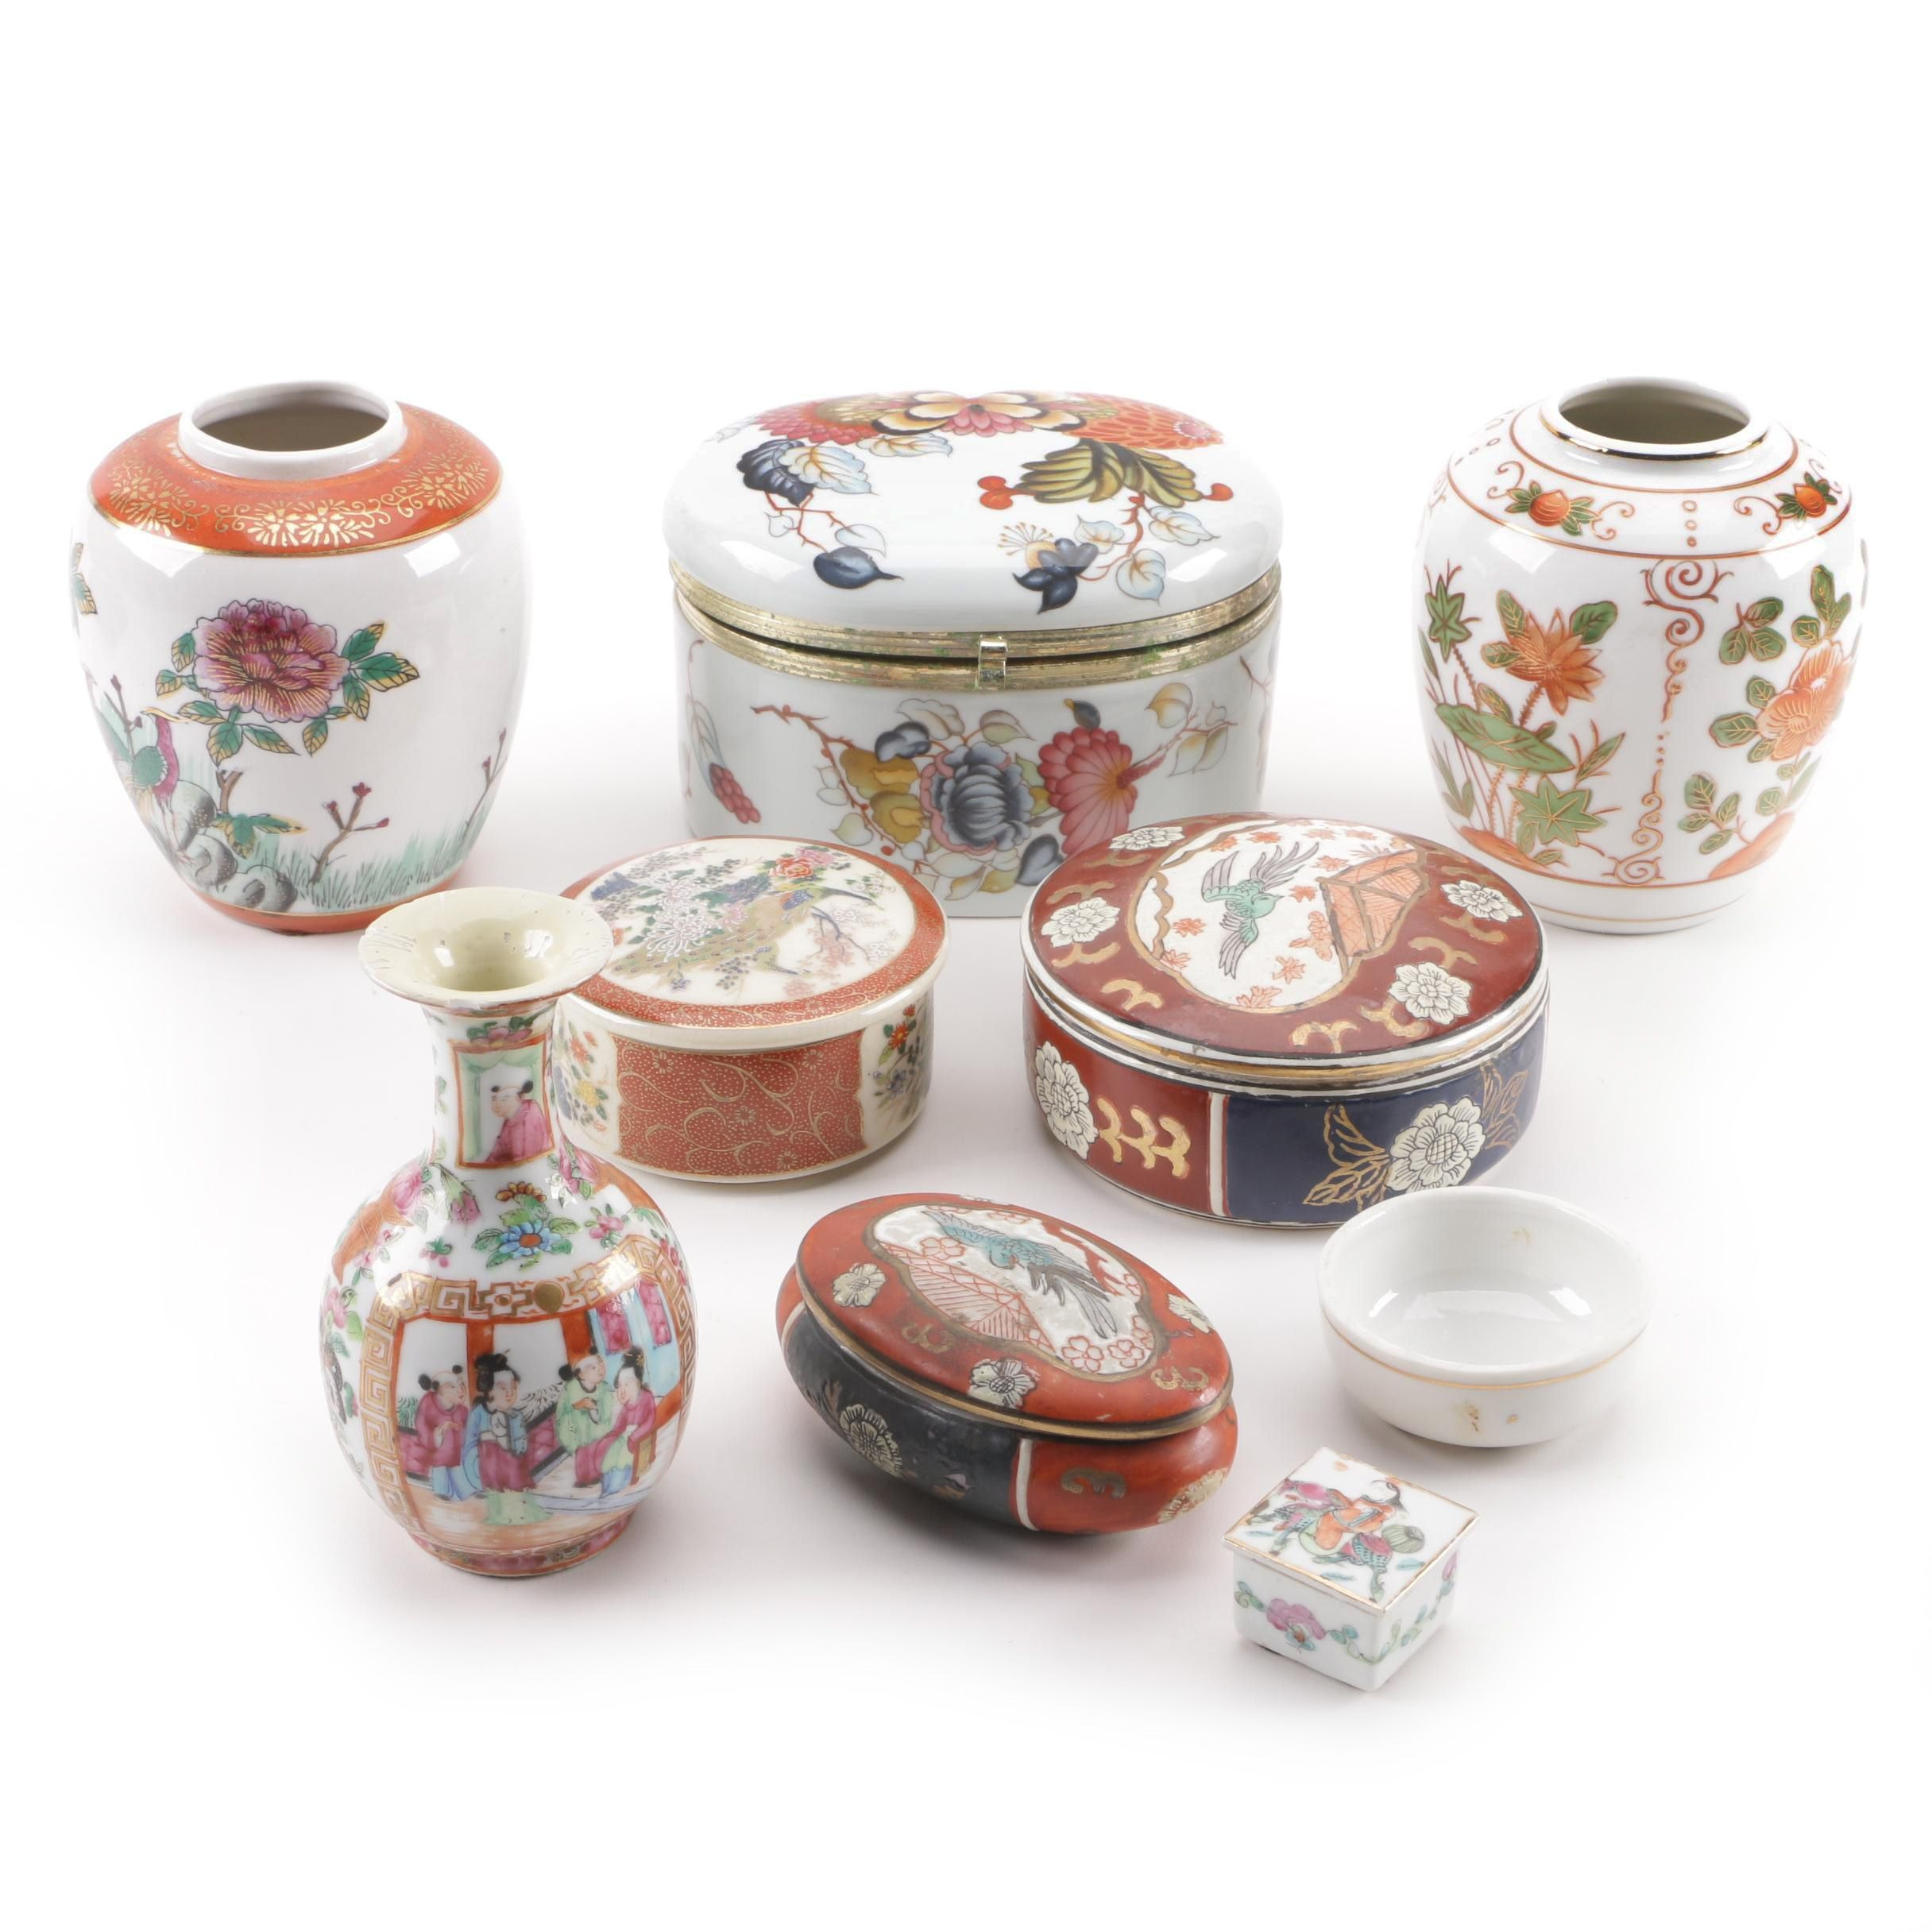 East Asian Vases and Boxes Including Andrea by Sadek